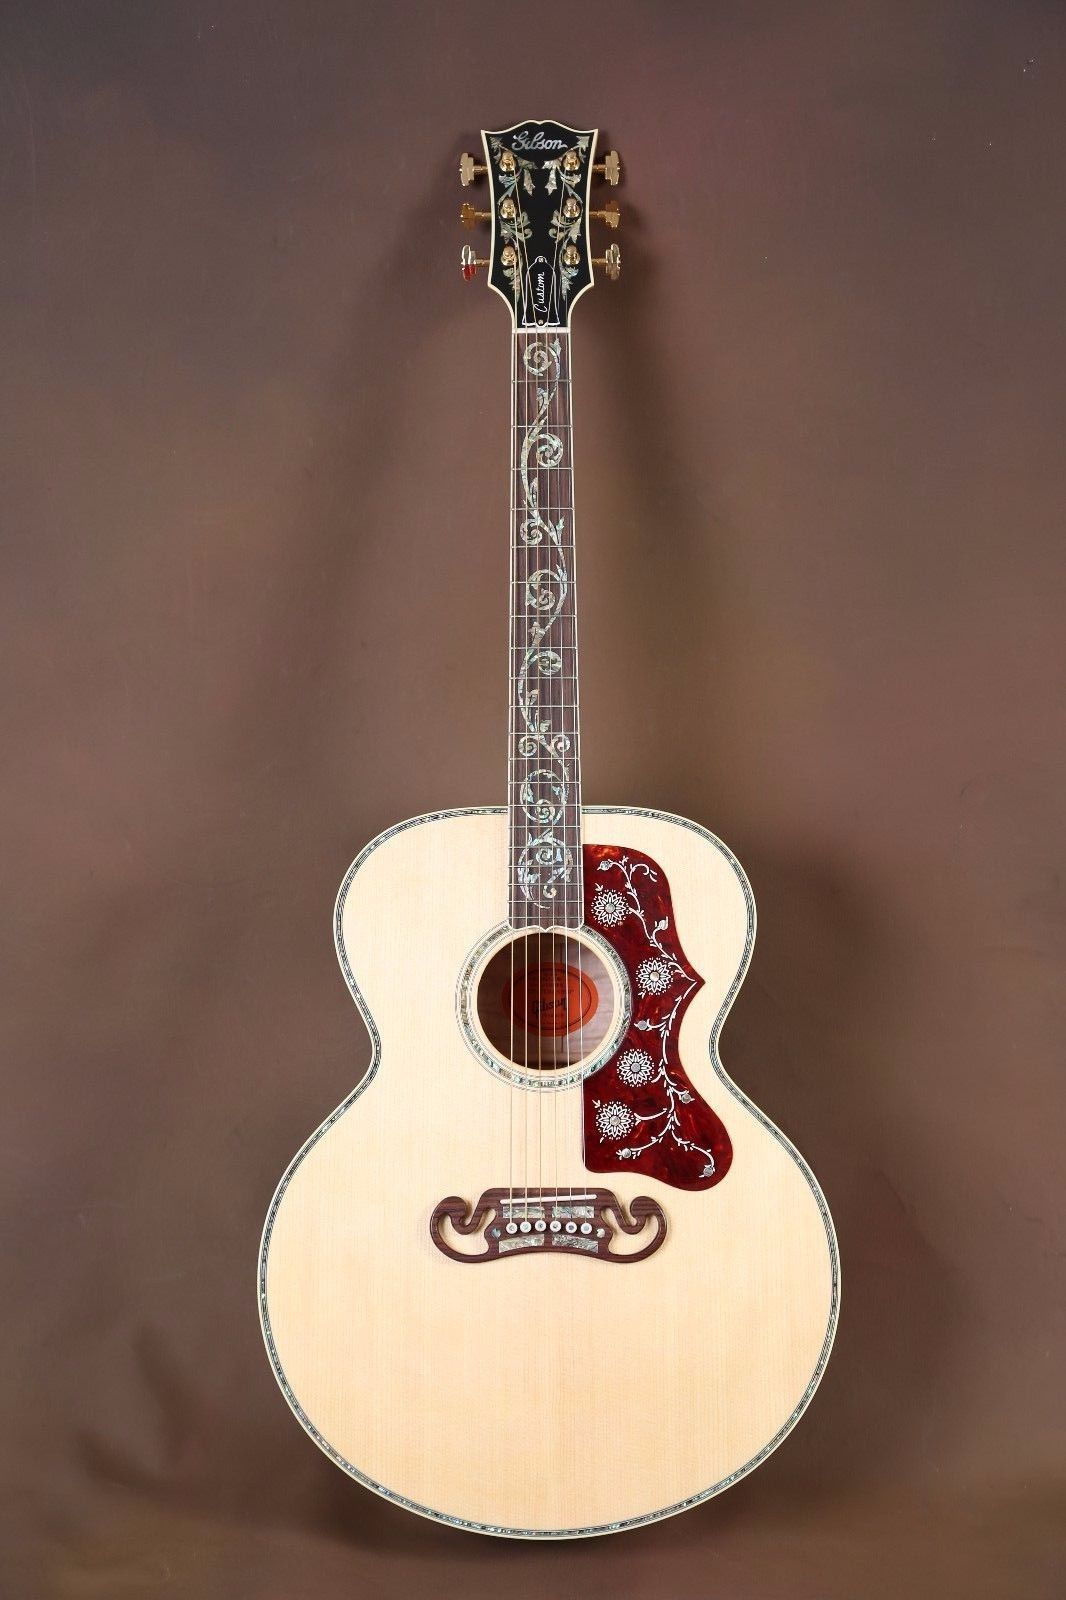 2015 gibson sj 200 custom quilt vine acoustic guitar j 200 711106103143 ebay 6 8 12 string. Black Bedroom Furniture Sets. Home Design Ideas